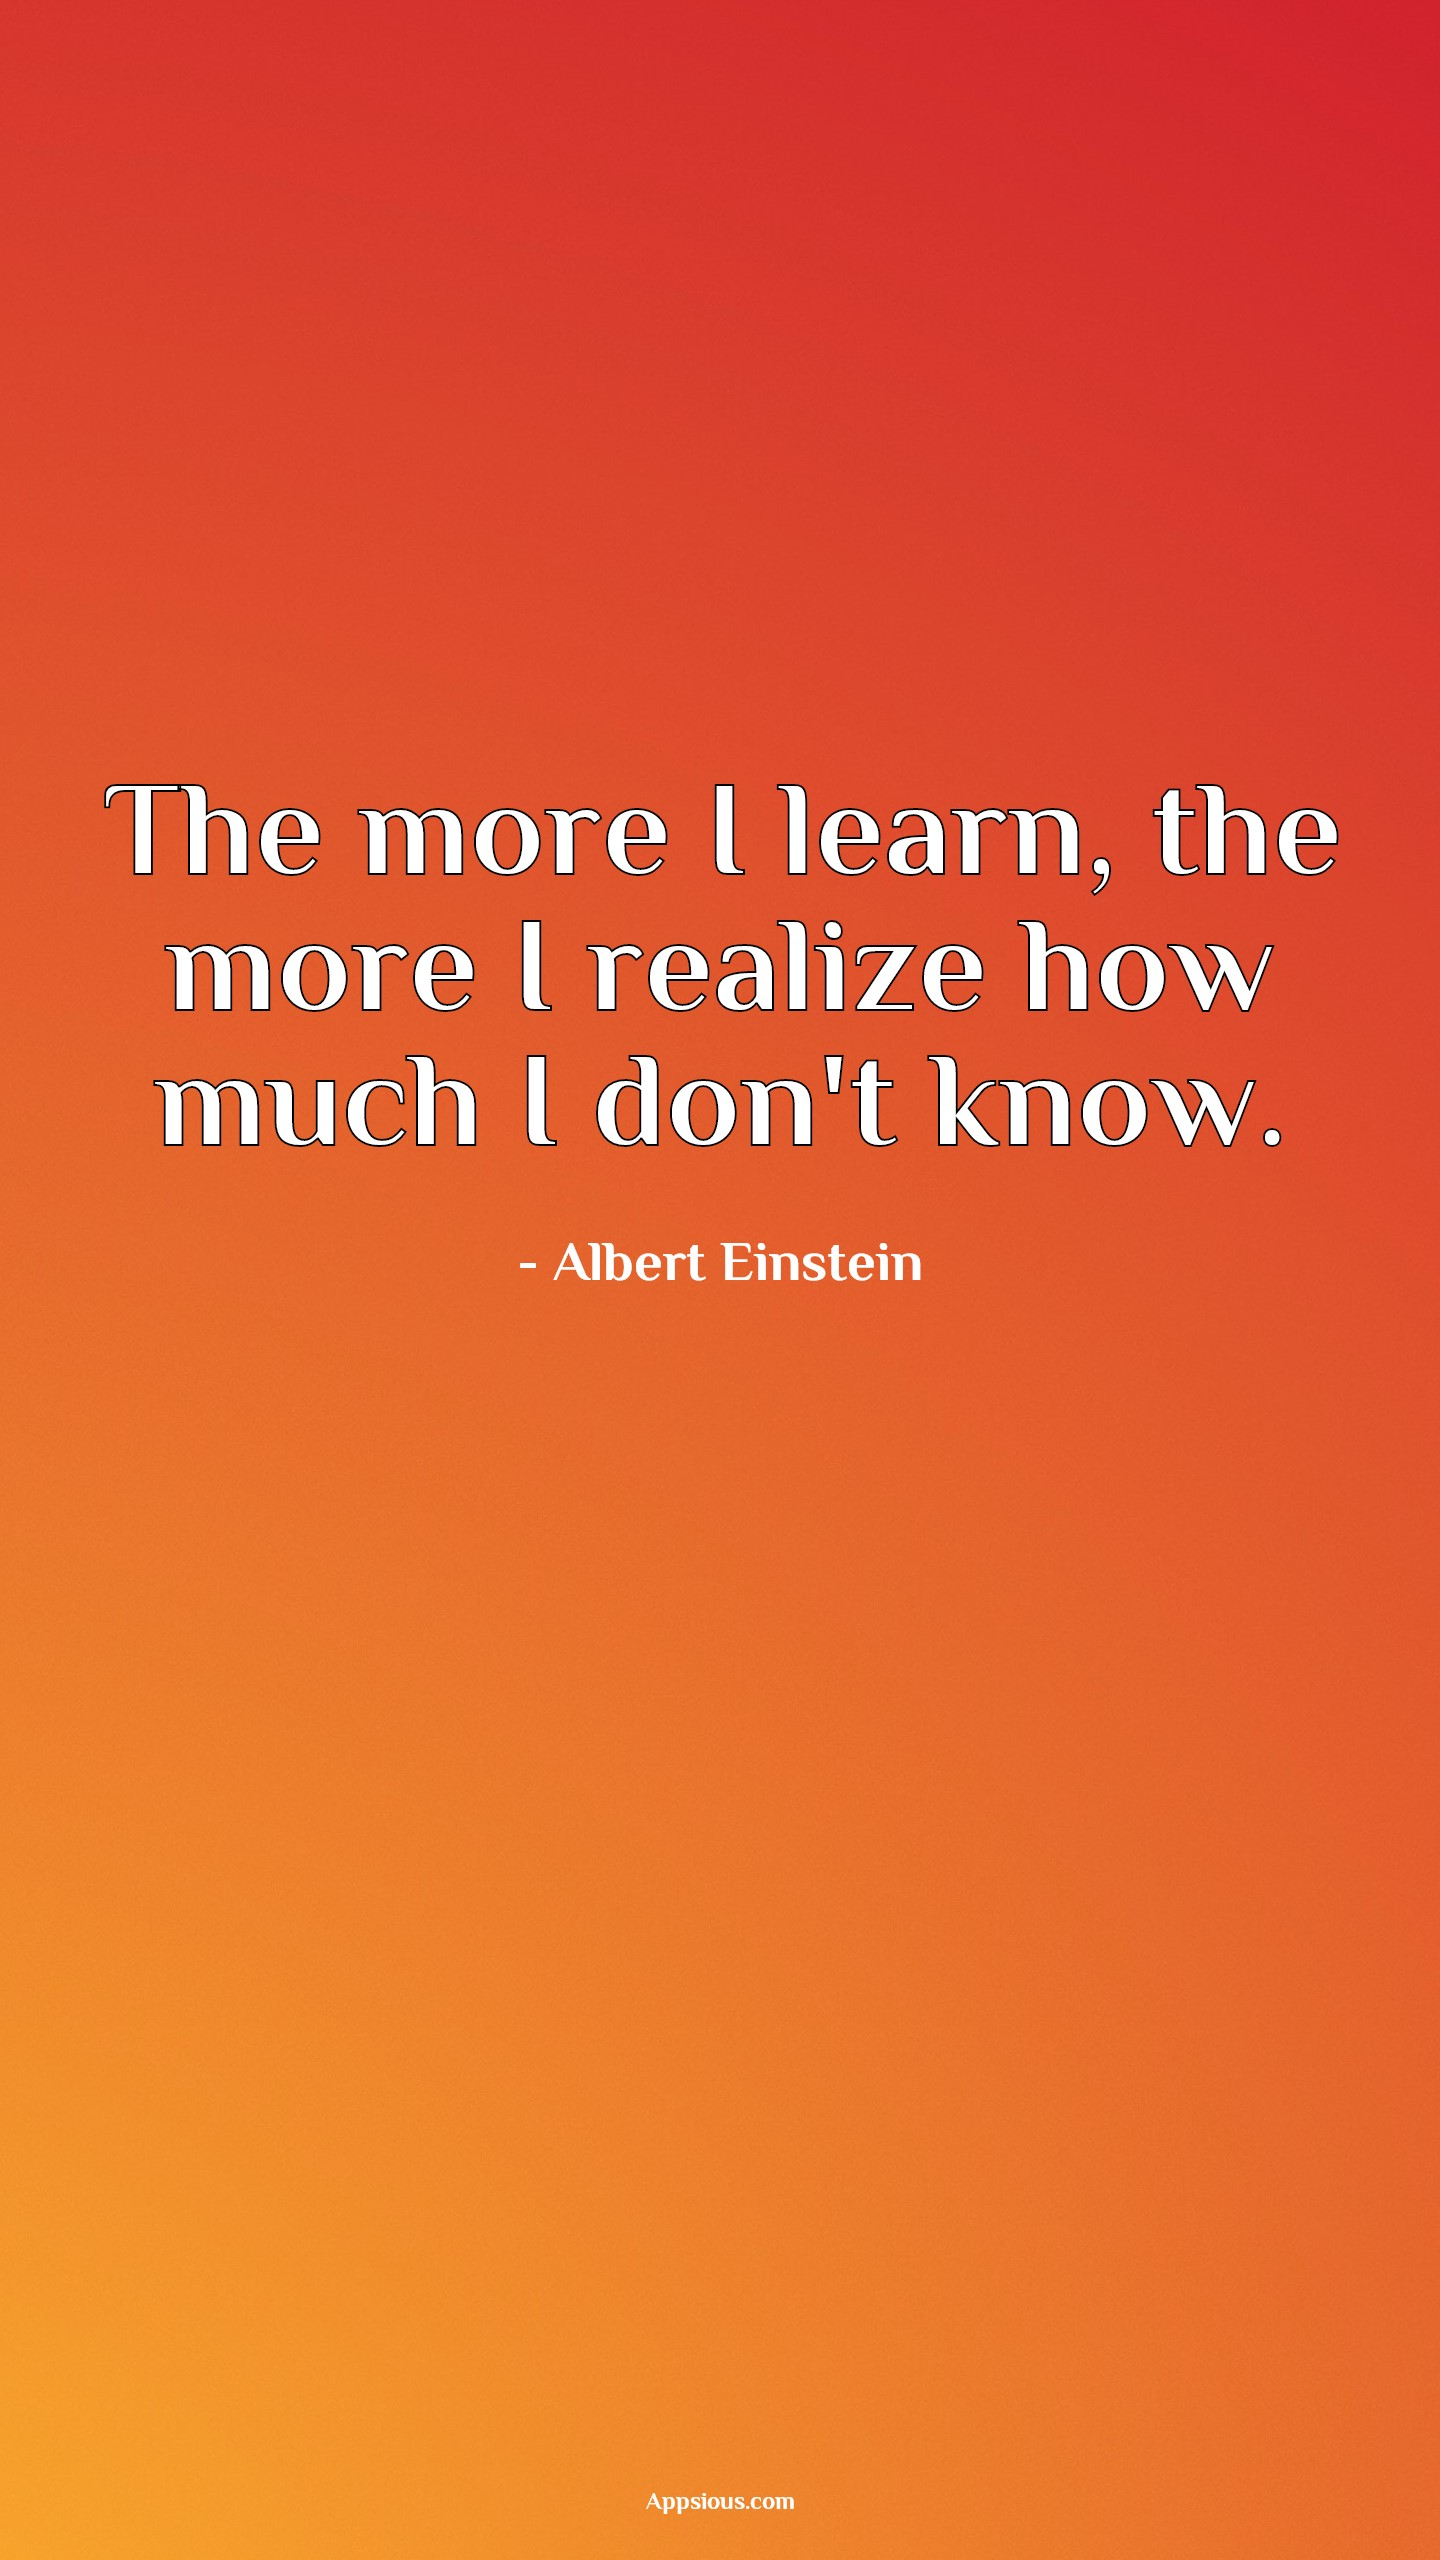 The more I learn, the more I realize how much I don't know.